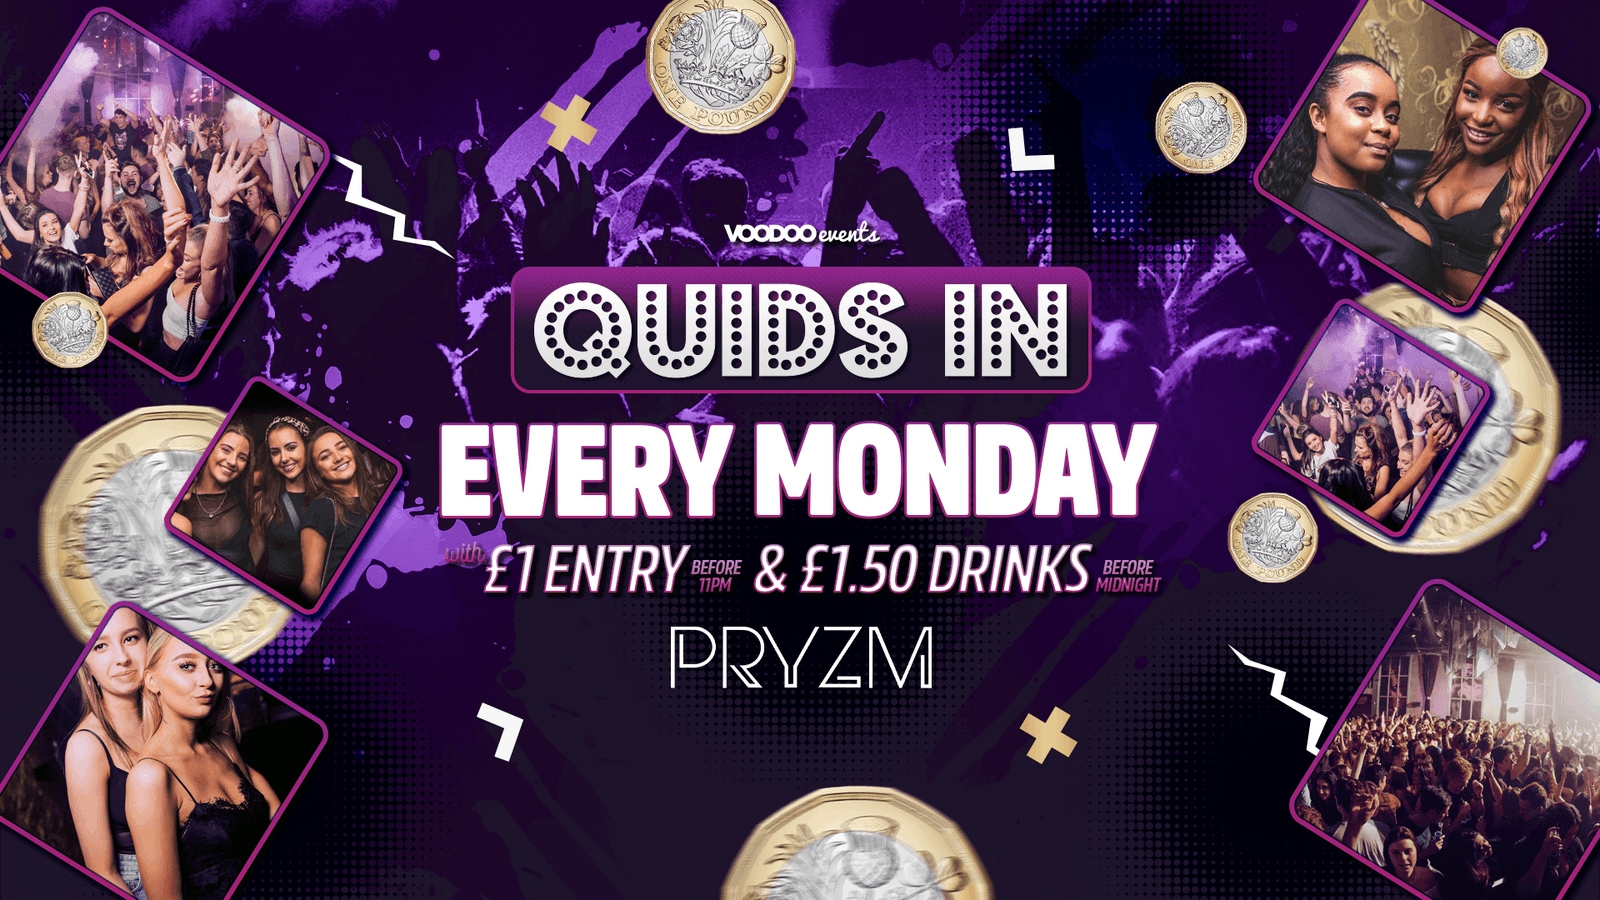 Quids In Mondays at PRYZM – 27th September